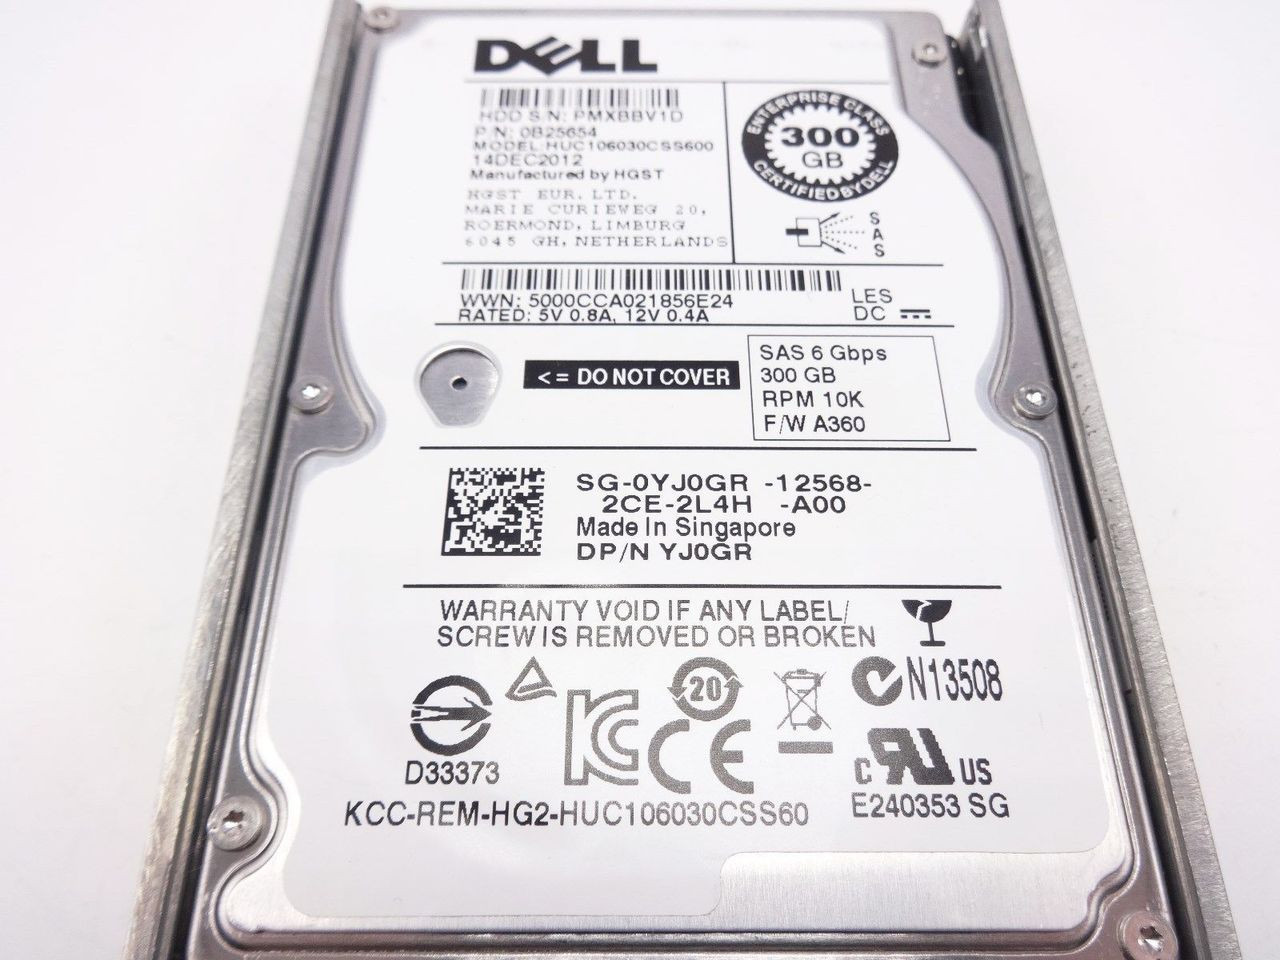 Dell YJ0GR 300GB SAS 10K 2.5 6GBPS hard drive